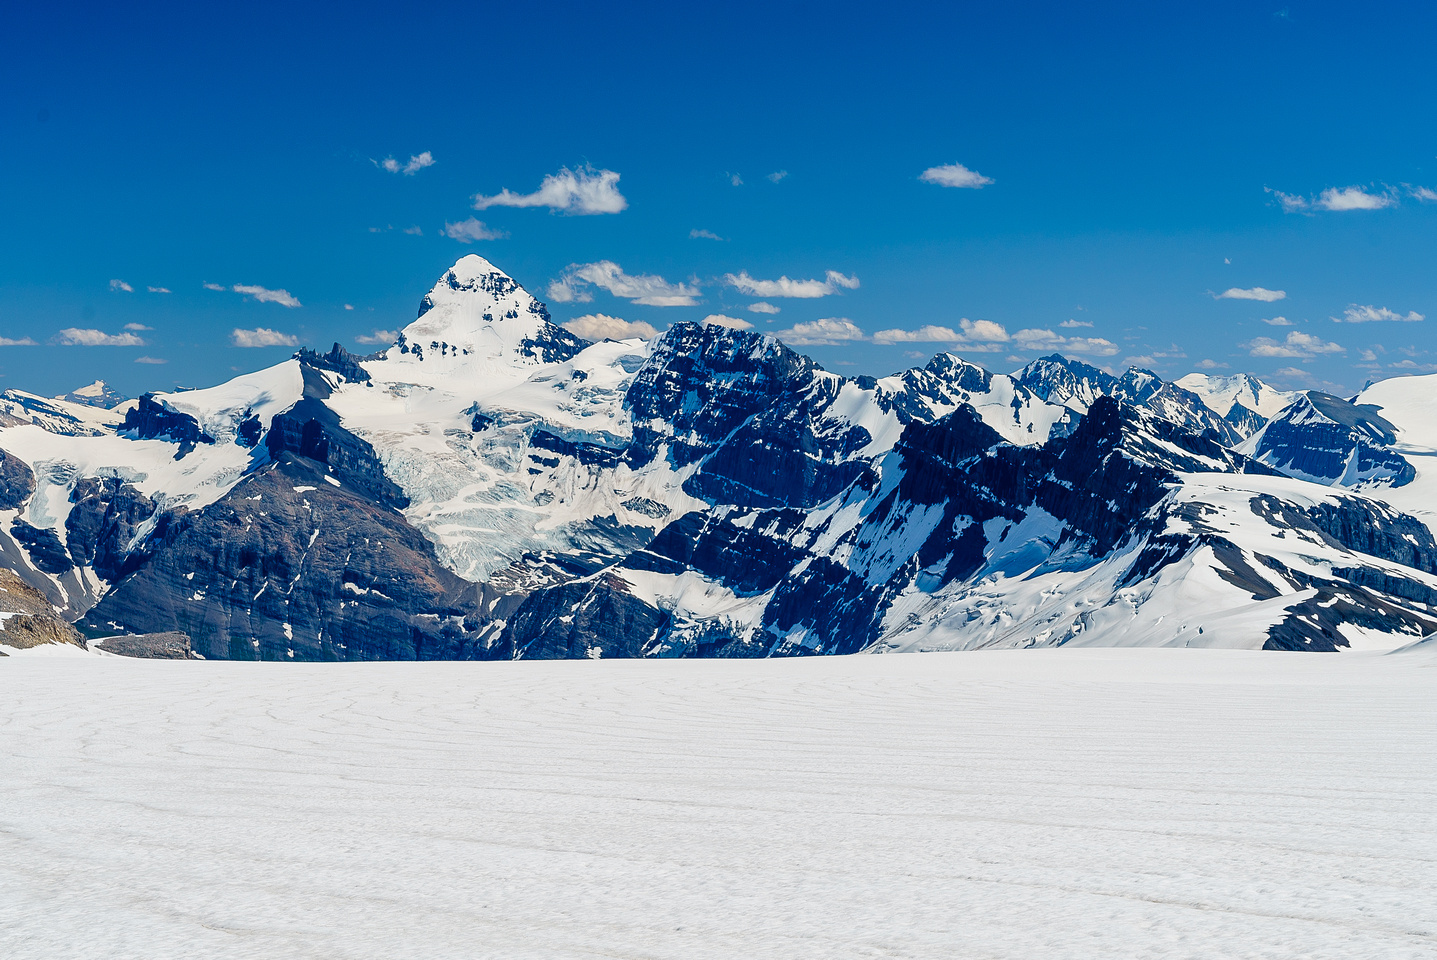 Looking back down the main Lyell Glacier at Mount Forbes.